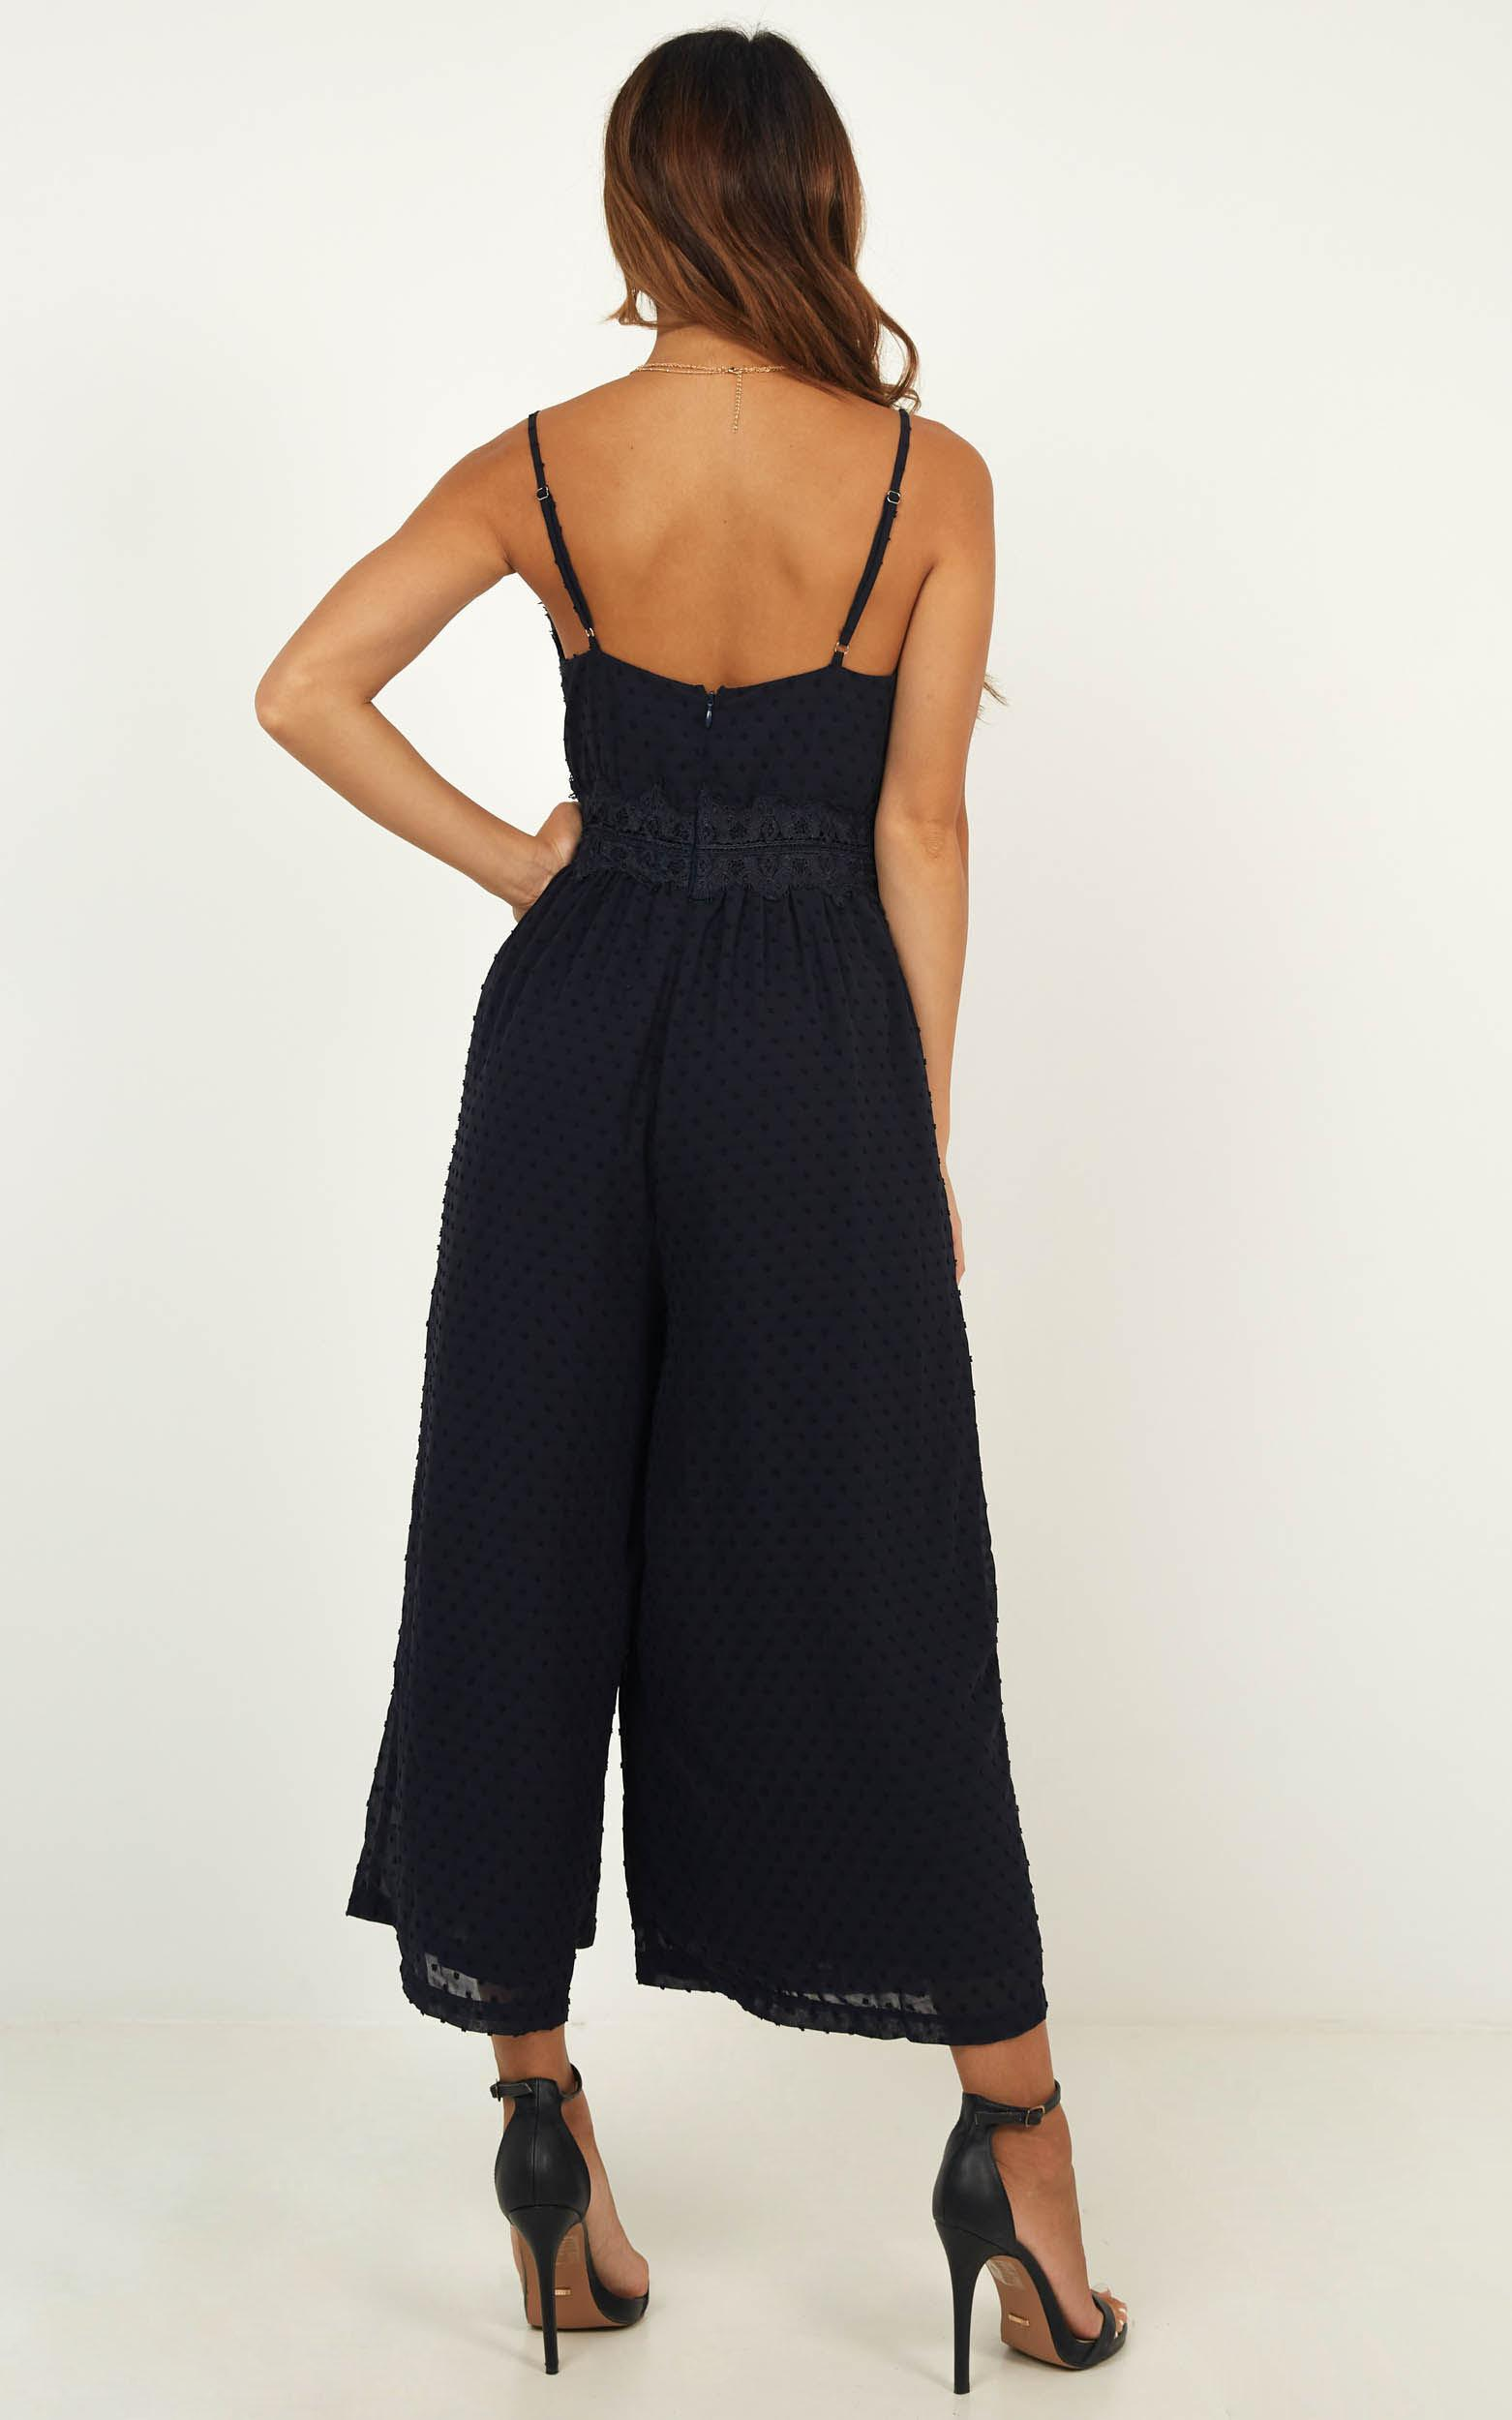 We Could Be Friends Jumpsuit In Navy - 4 (XXS), Navy, hi-res image number null